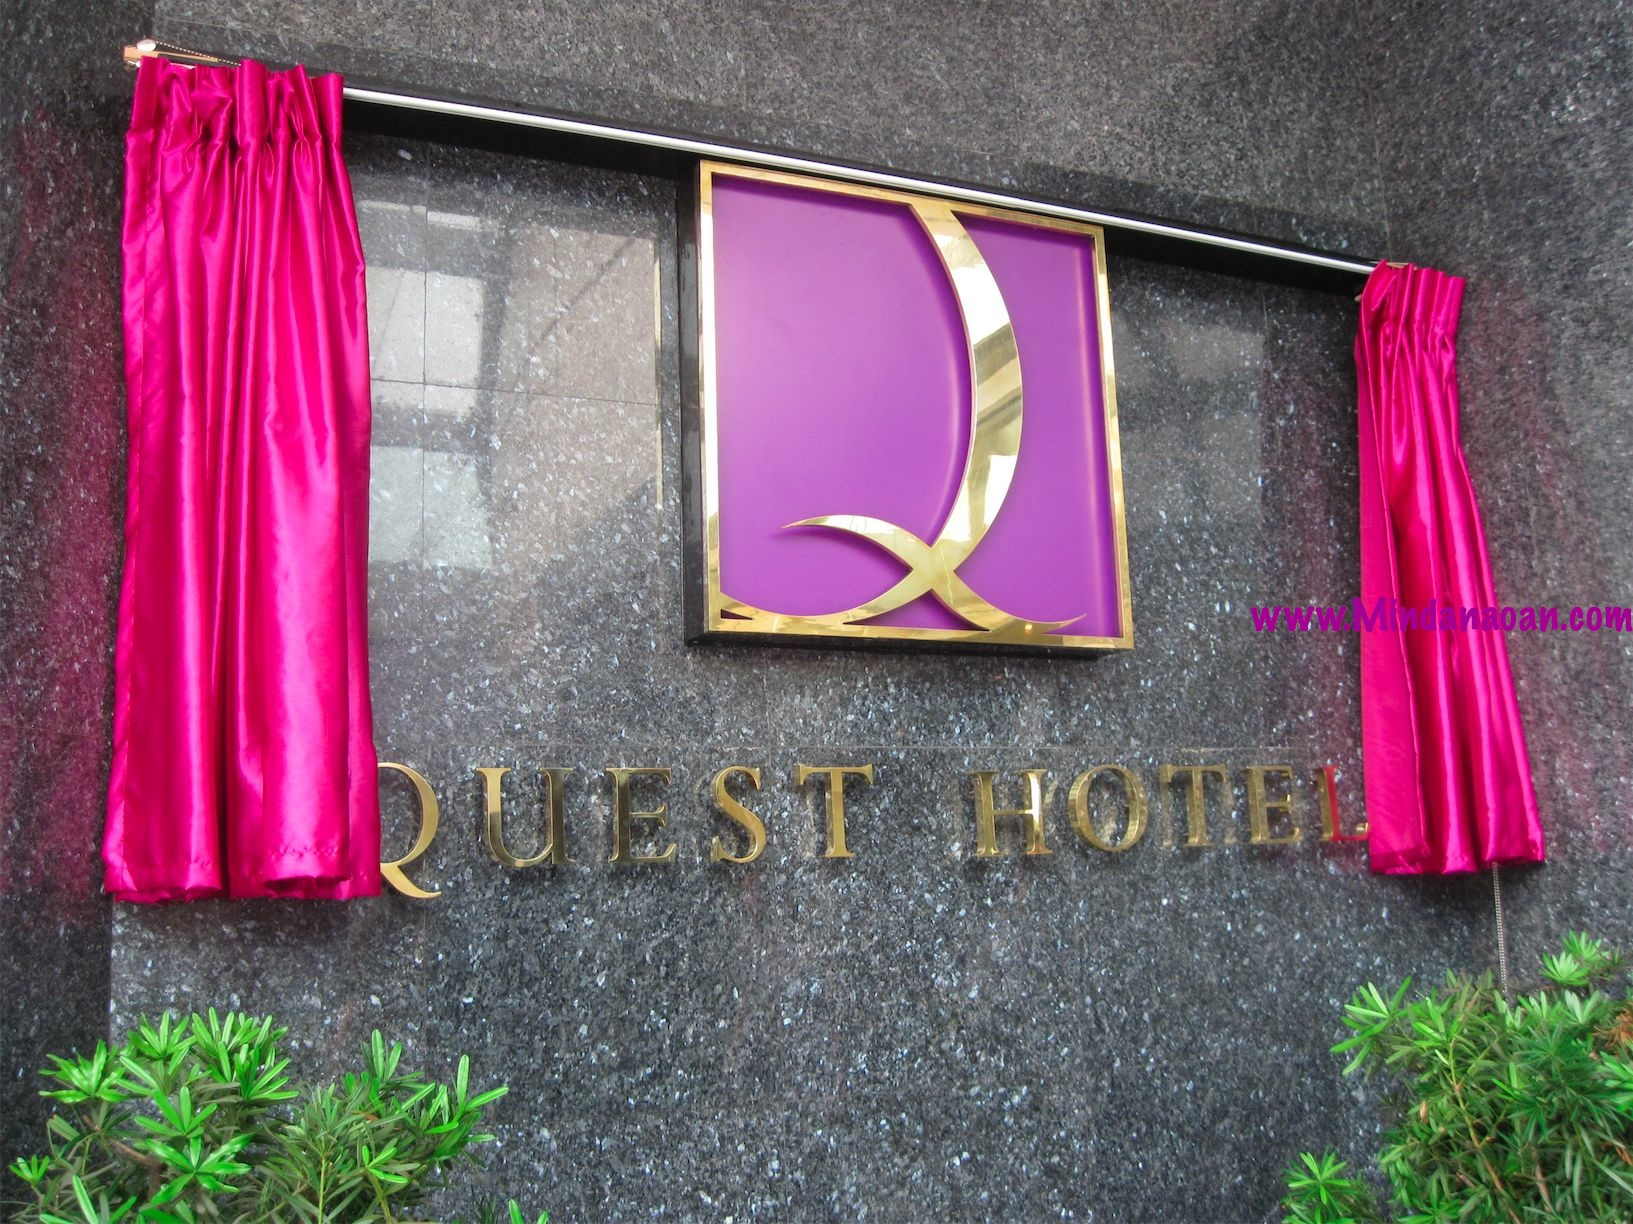 Quest Cebu Hotel joins Cagayan Travel Exchange, trip to Bali up for grabs